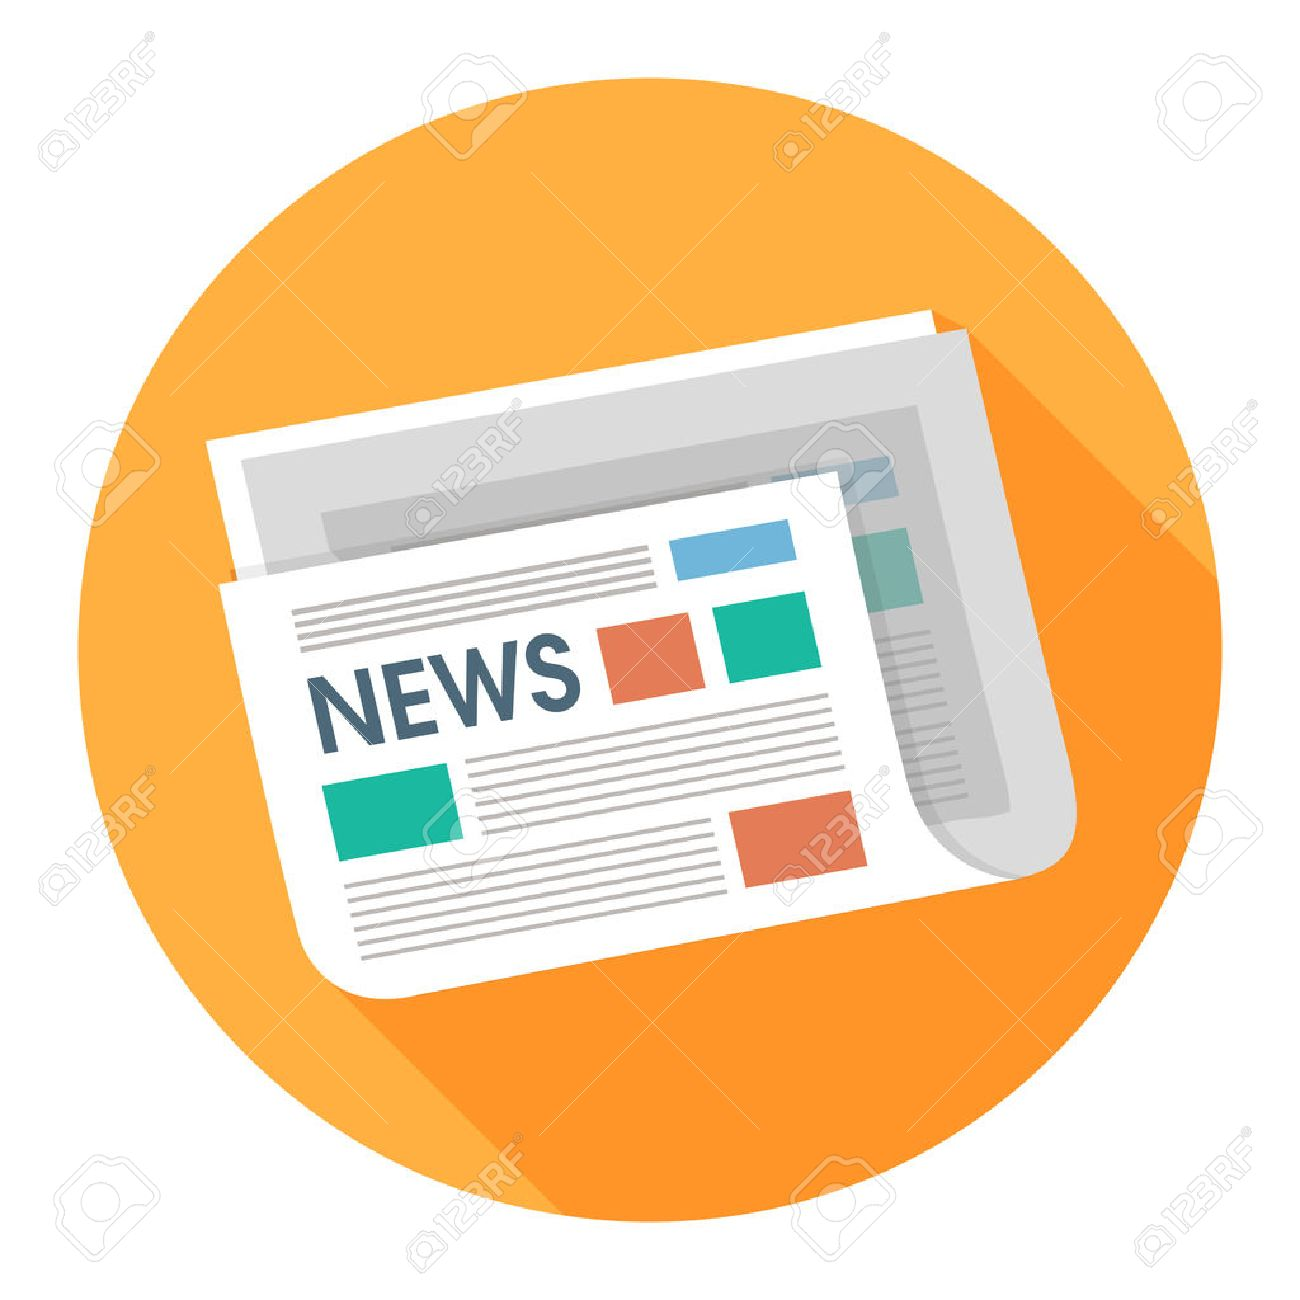 Newspaper Icon Royalty Free Cliparts, Vectors, And Stock Illustration.  Image 45788264.